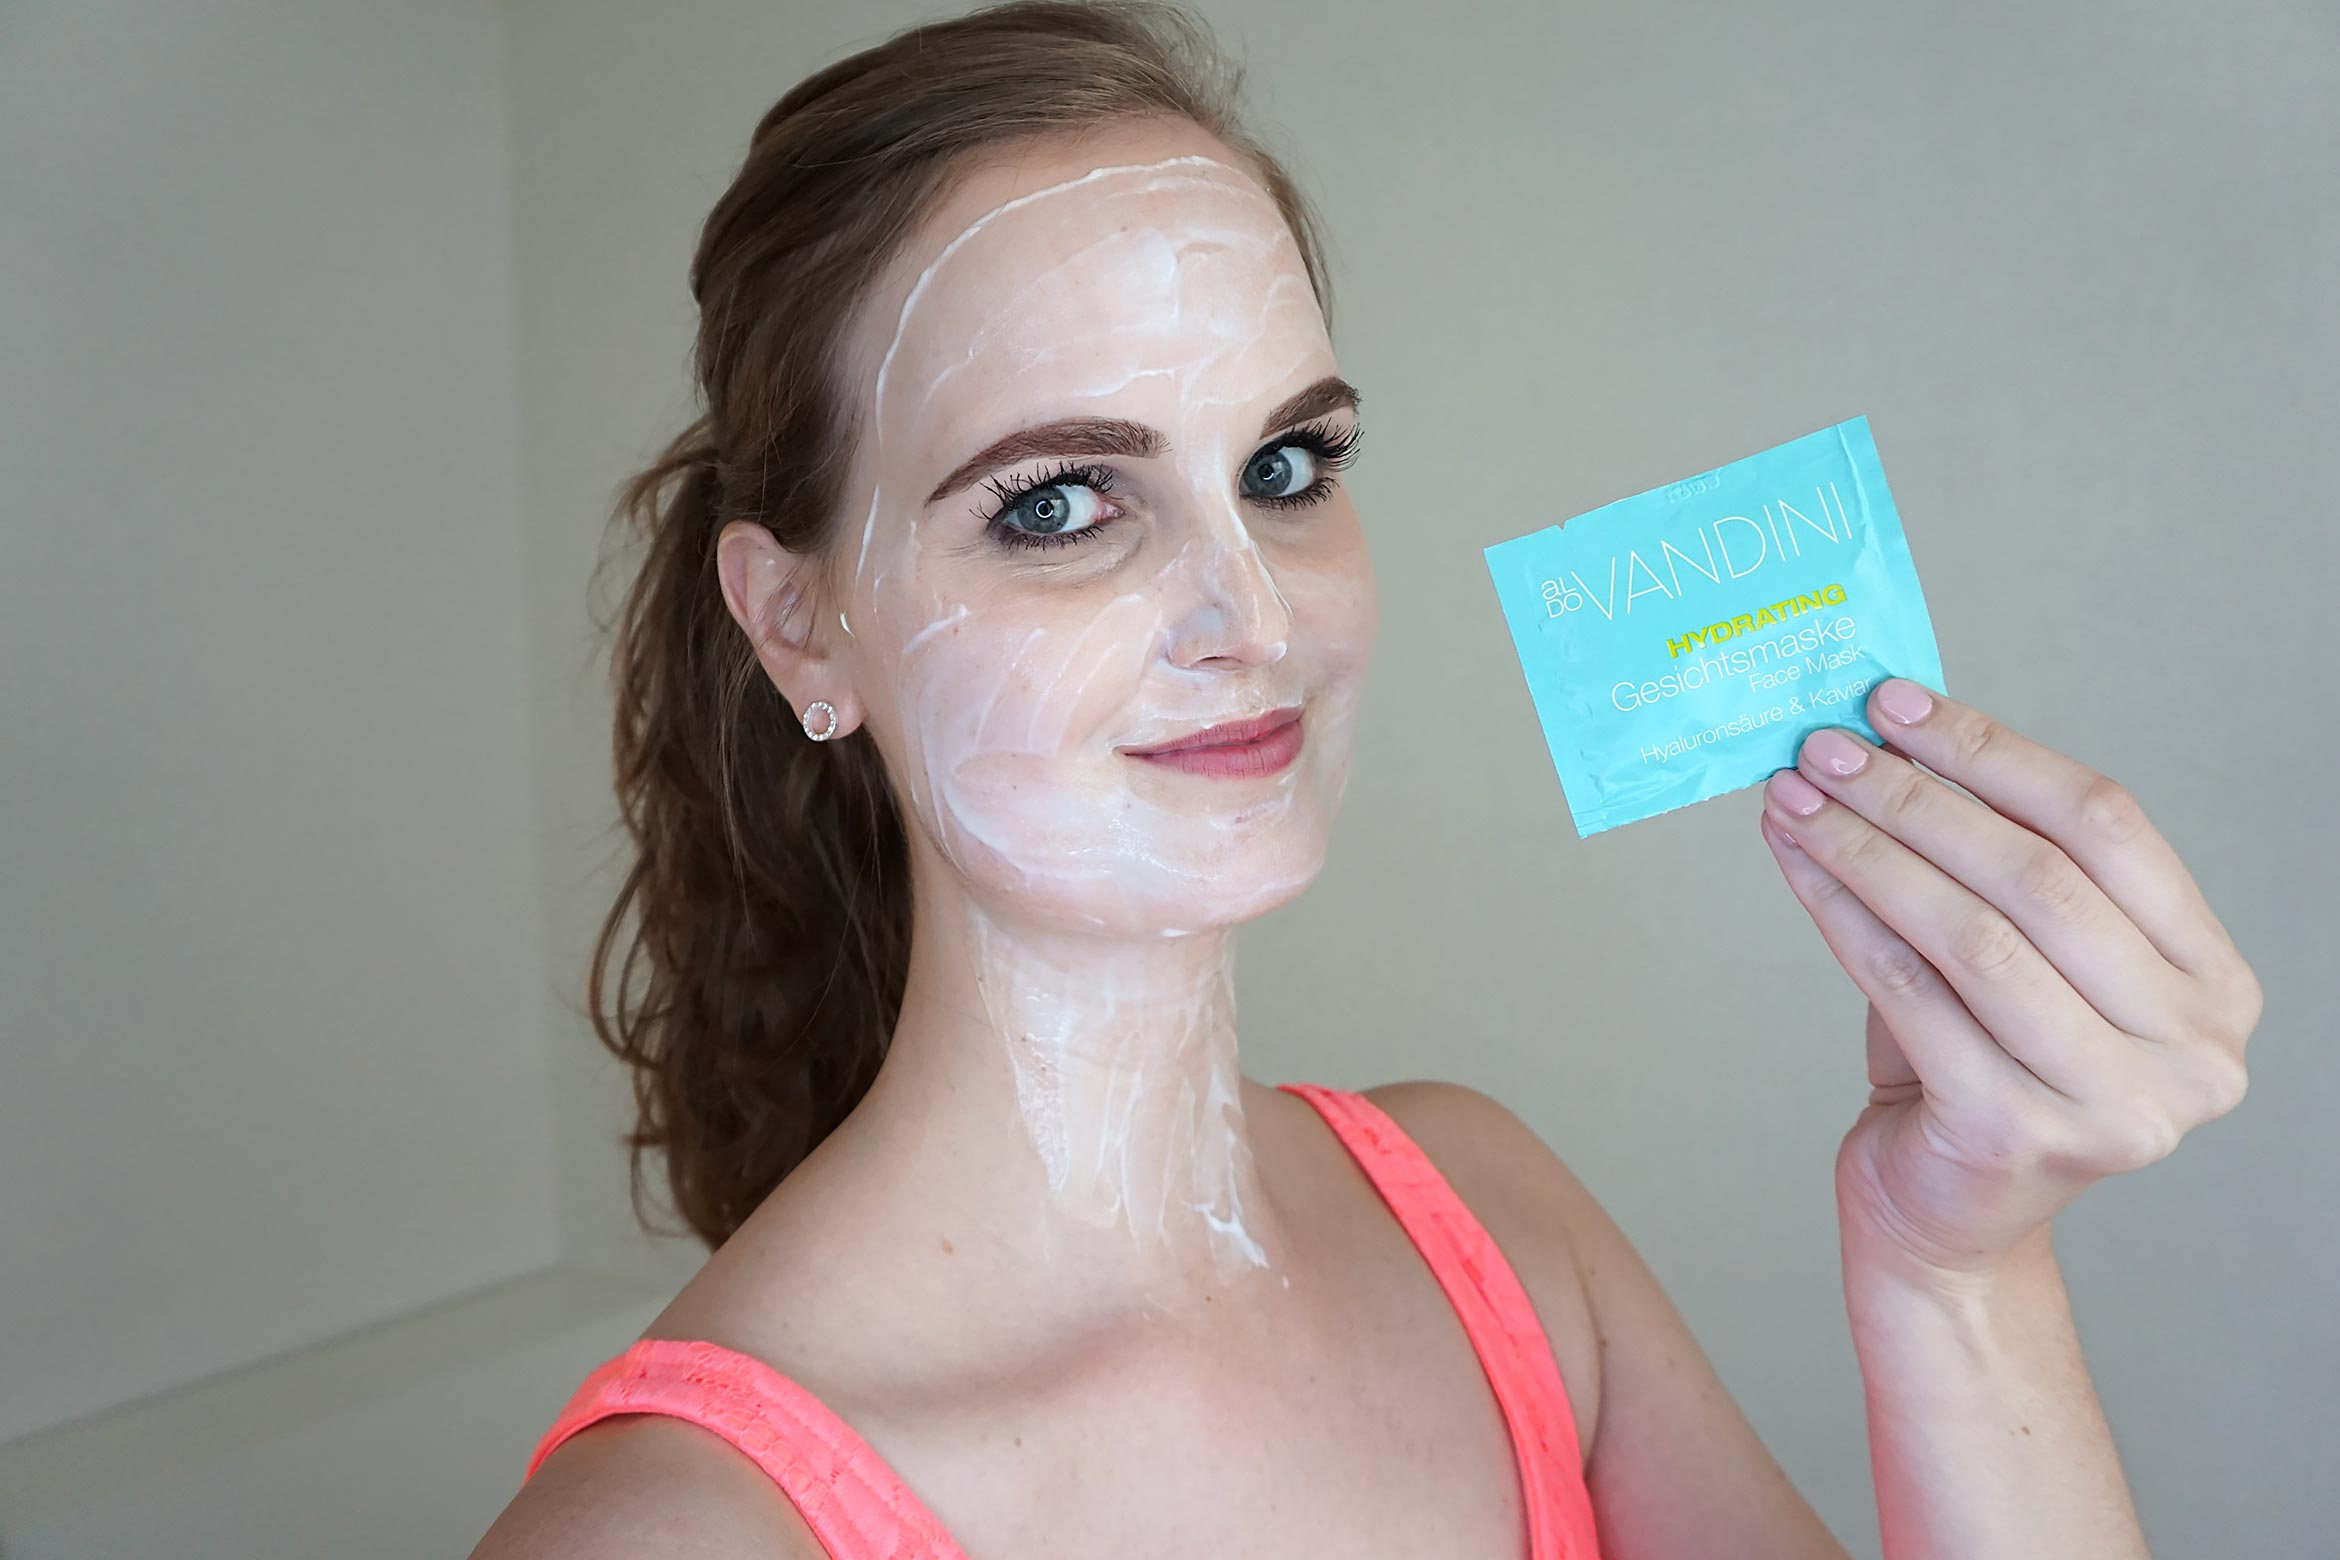 aldo-vandini-hydrating-face-mask-review-1